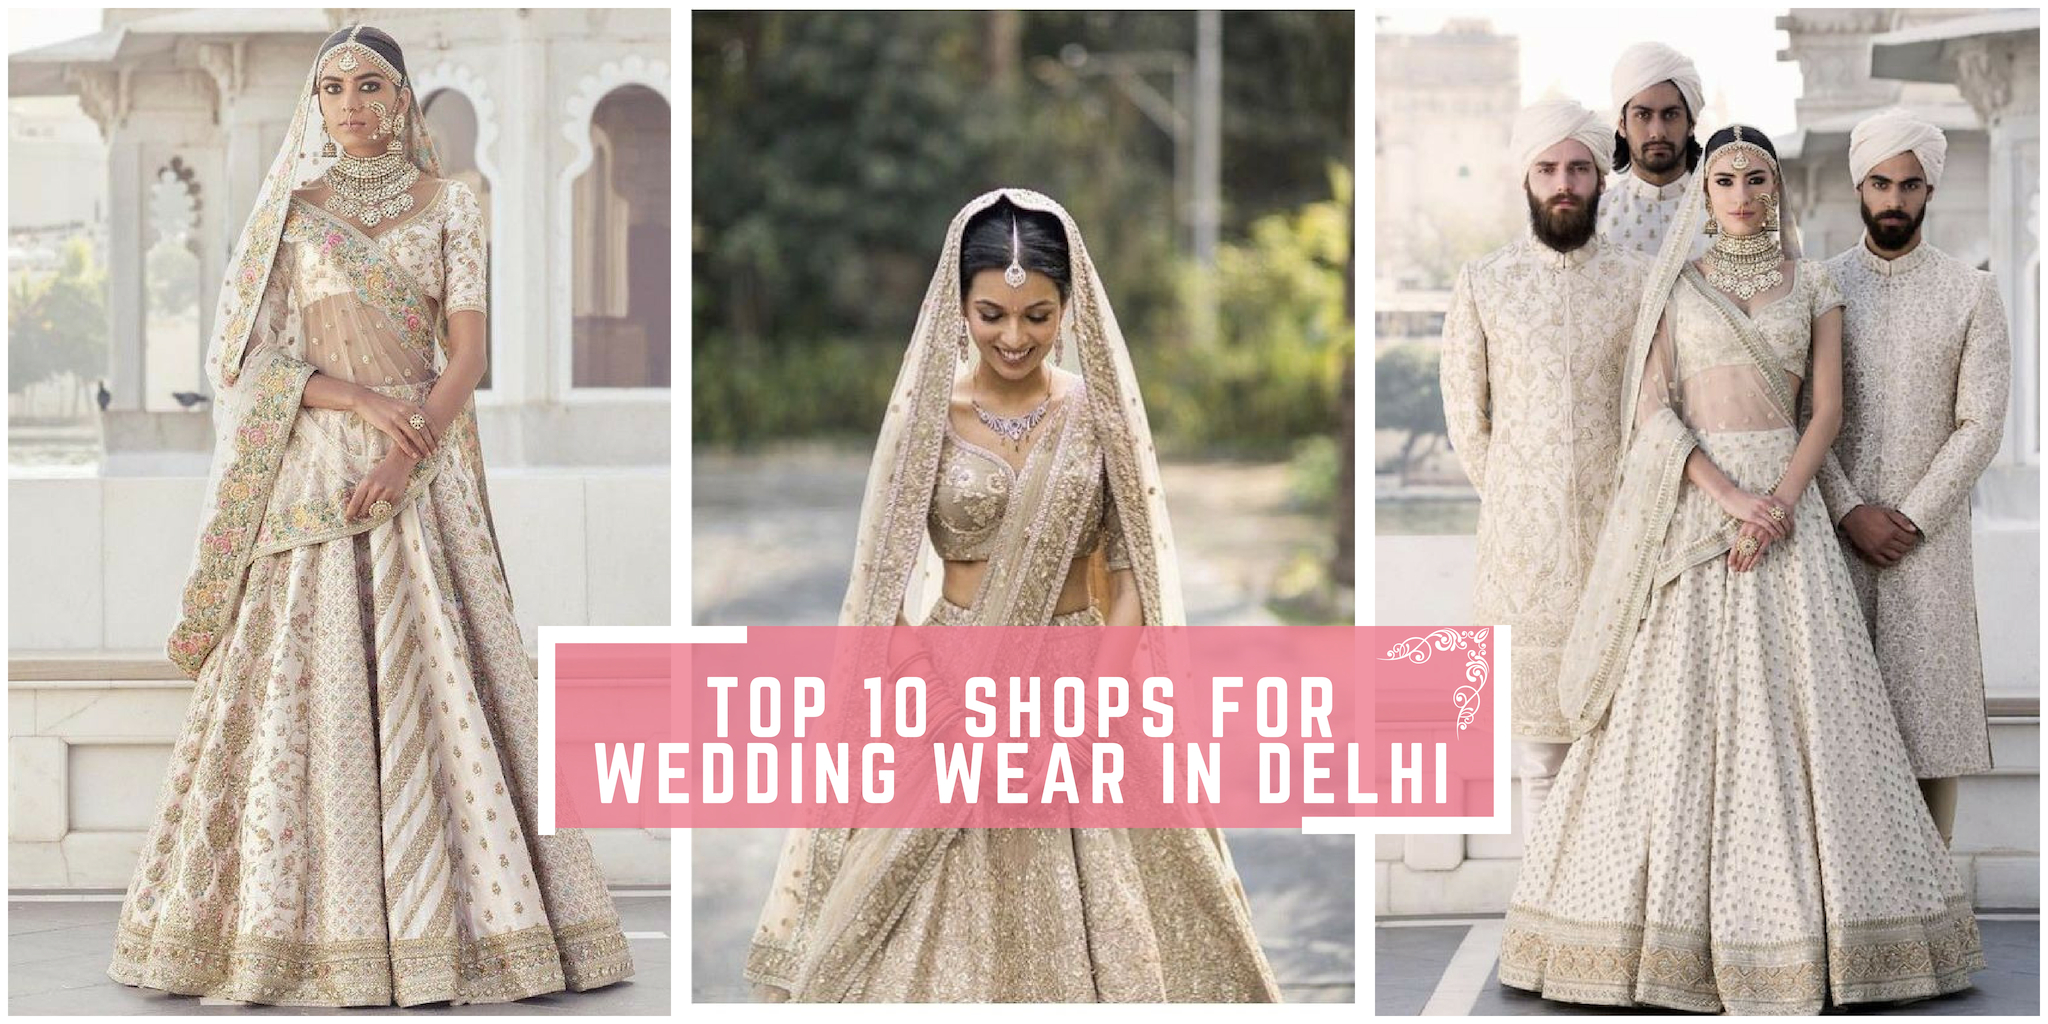 95ae01a966b2 This Wedding Season - Shop From These Top 10 Outlets in Delhi For Bridal  Wear